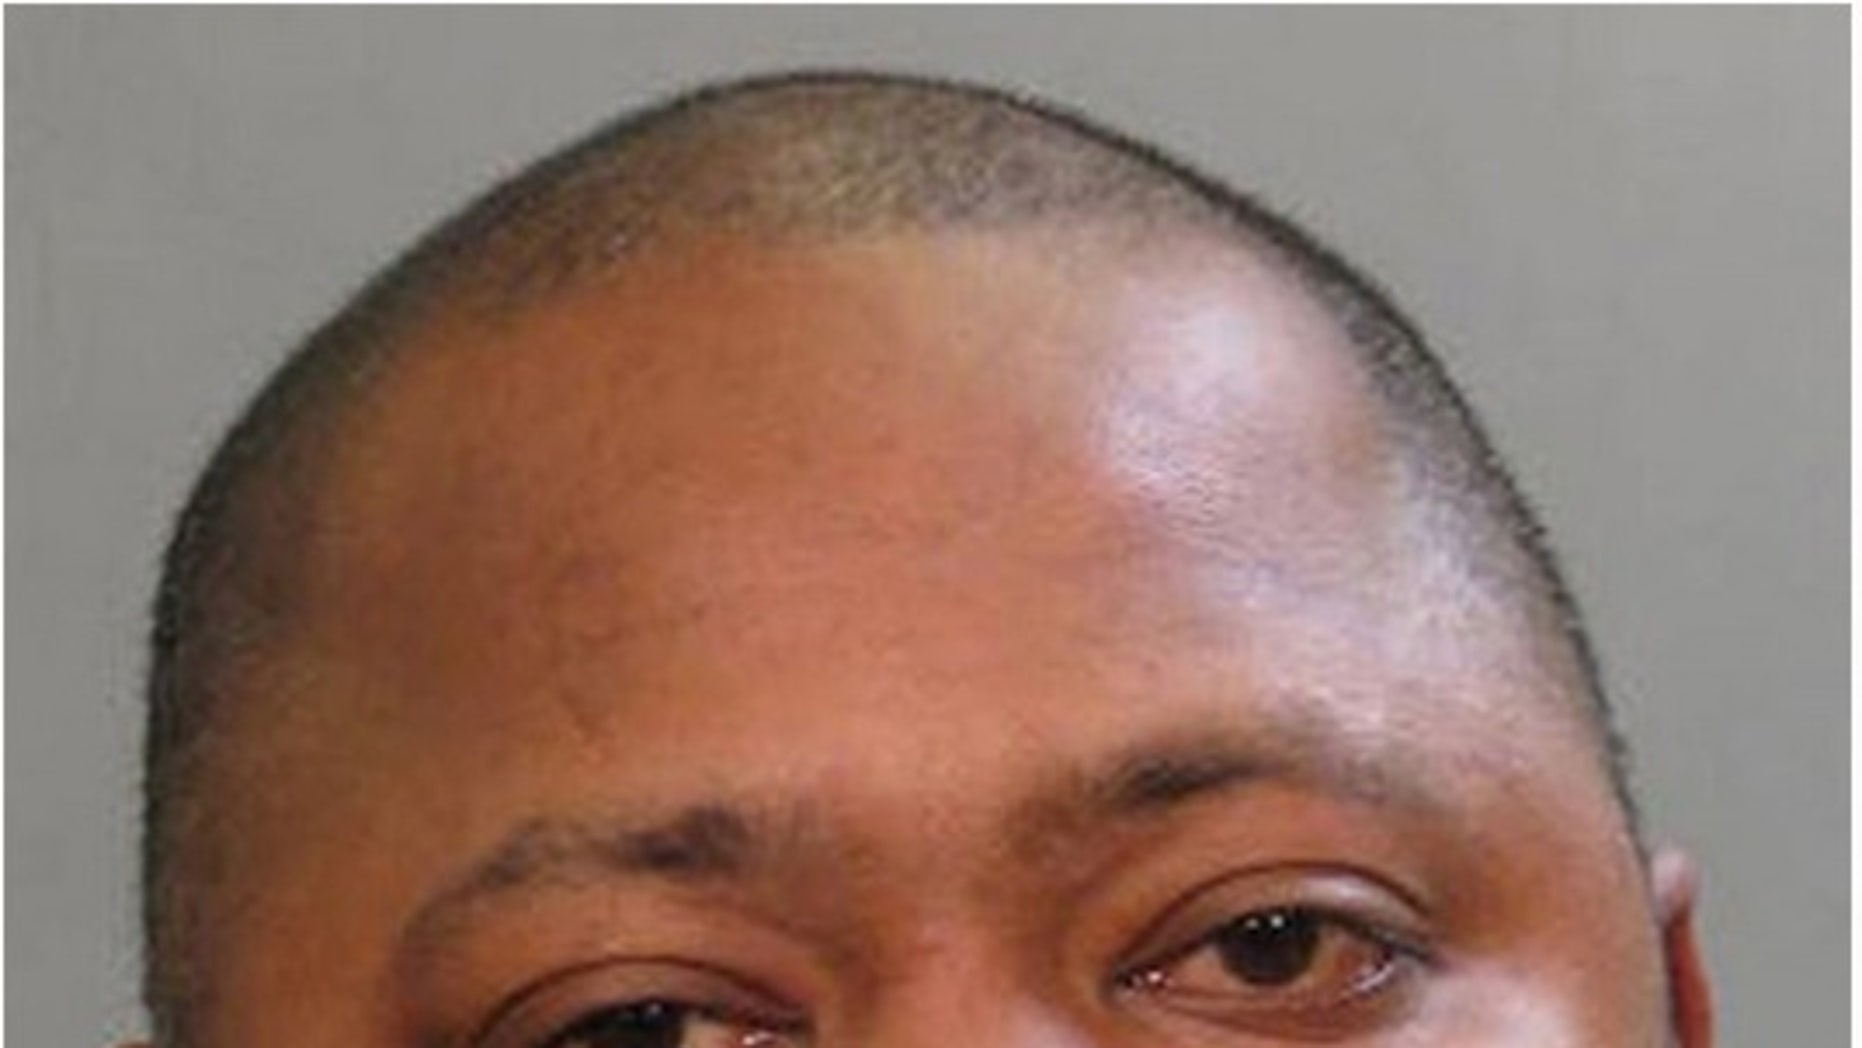 Jelani Marj was accused of sexually abusing a minor.